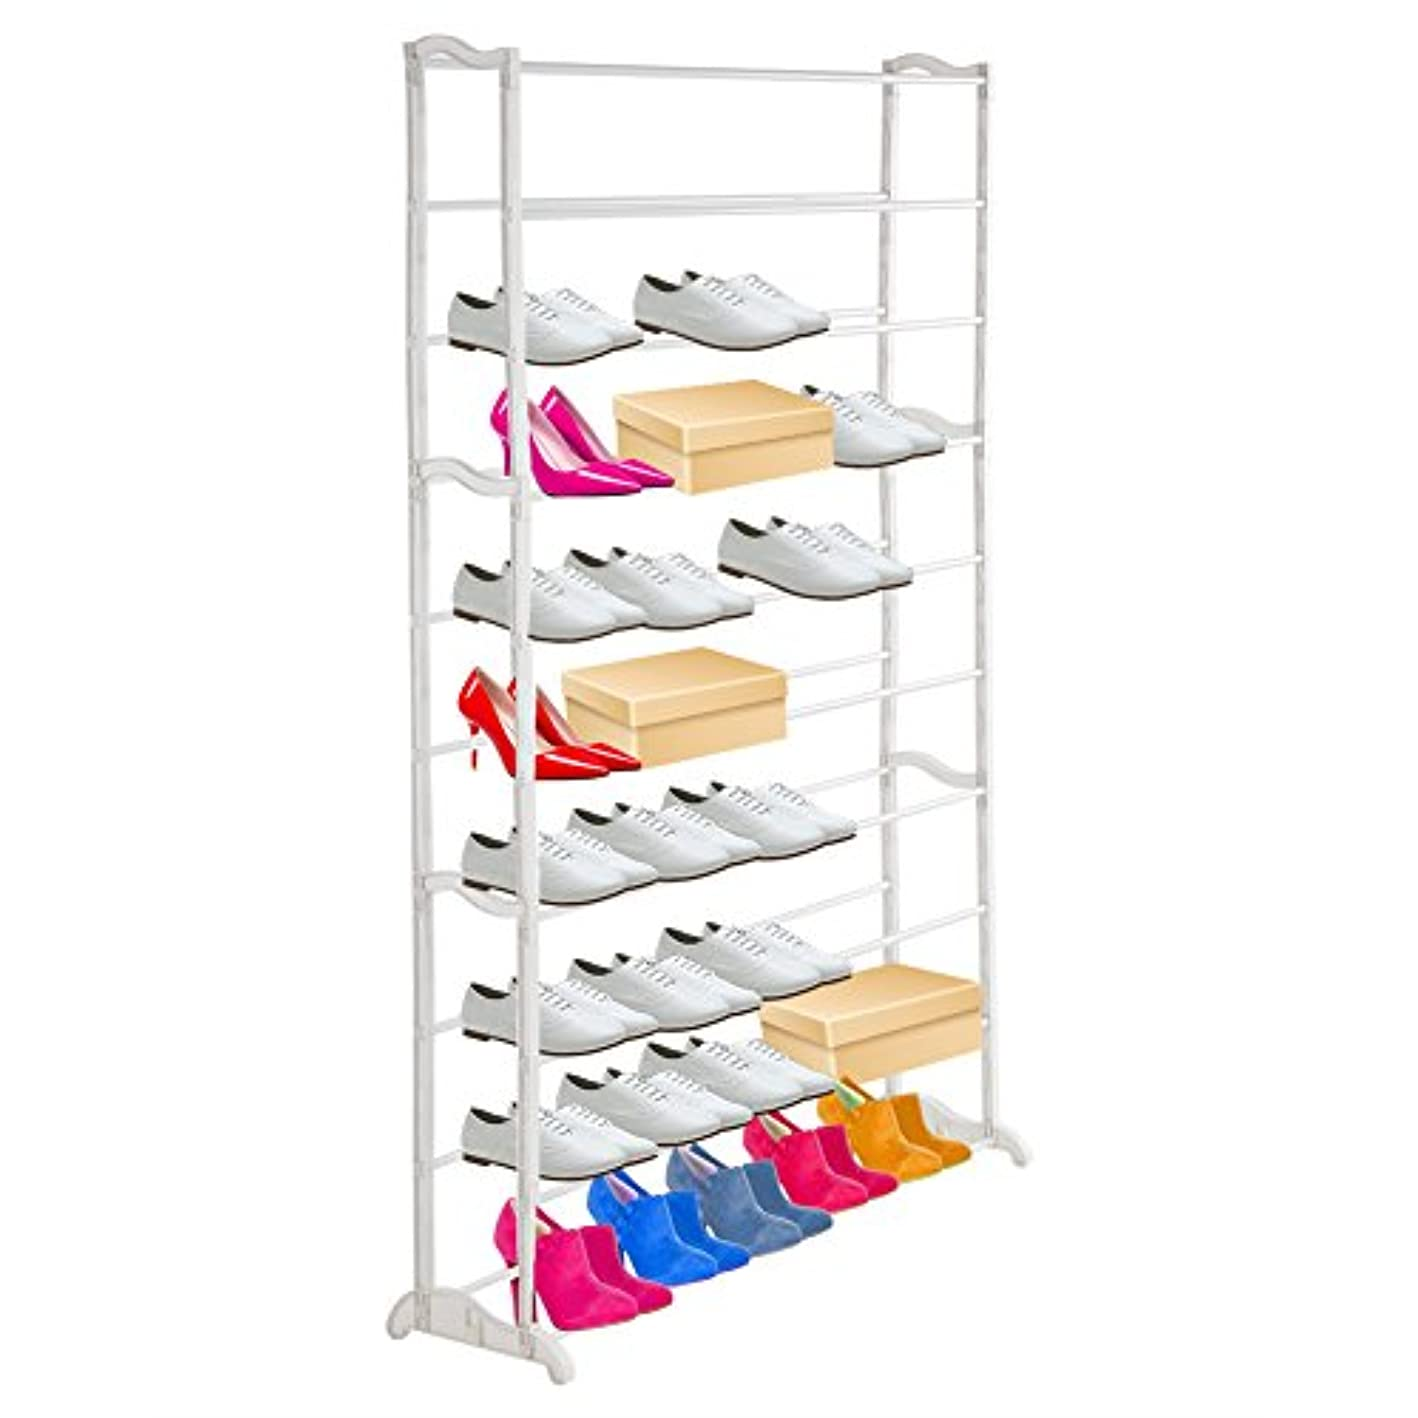 Zerone Shoe Rack Organizer,10 Tiers Shoe Rack 50 Pairs Shoe Tower Organizer Cabinet Space Saving Shoe Organizer